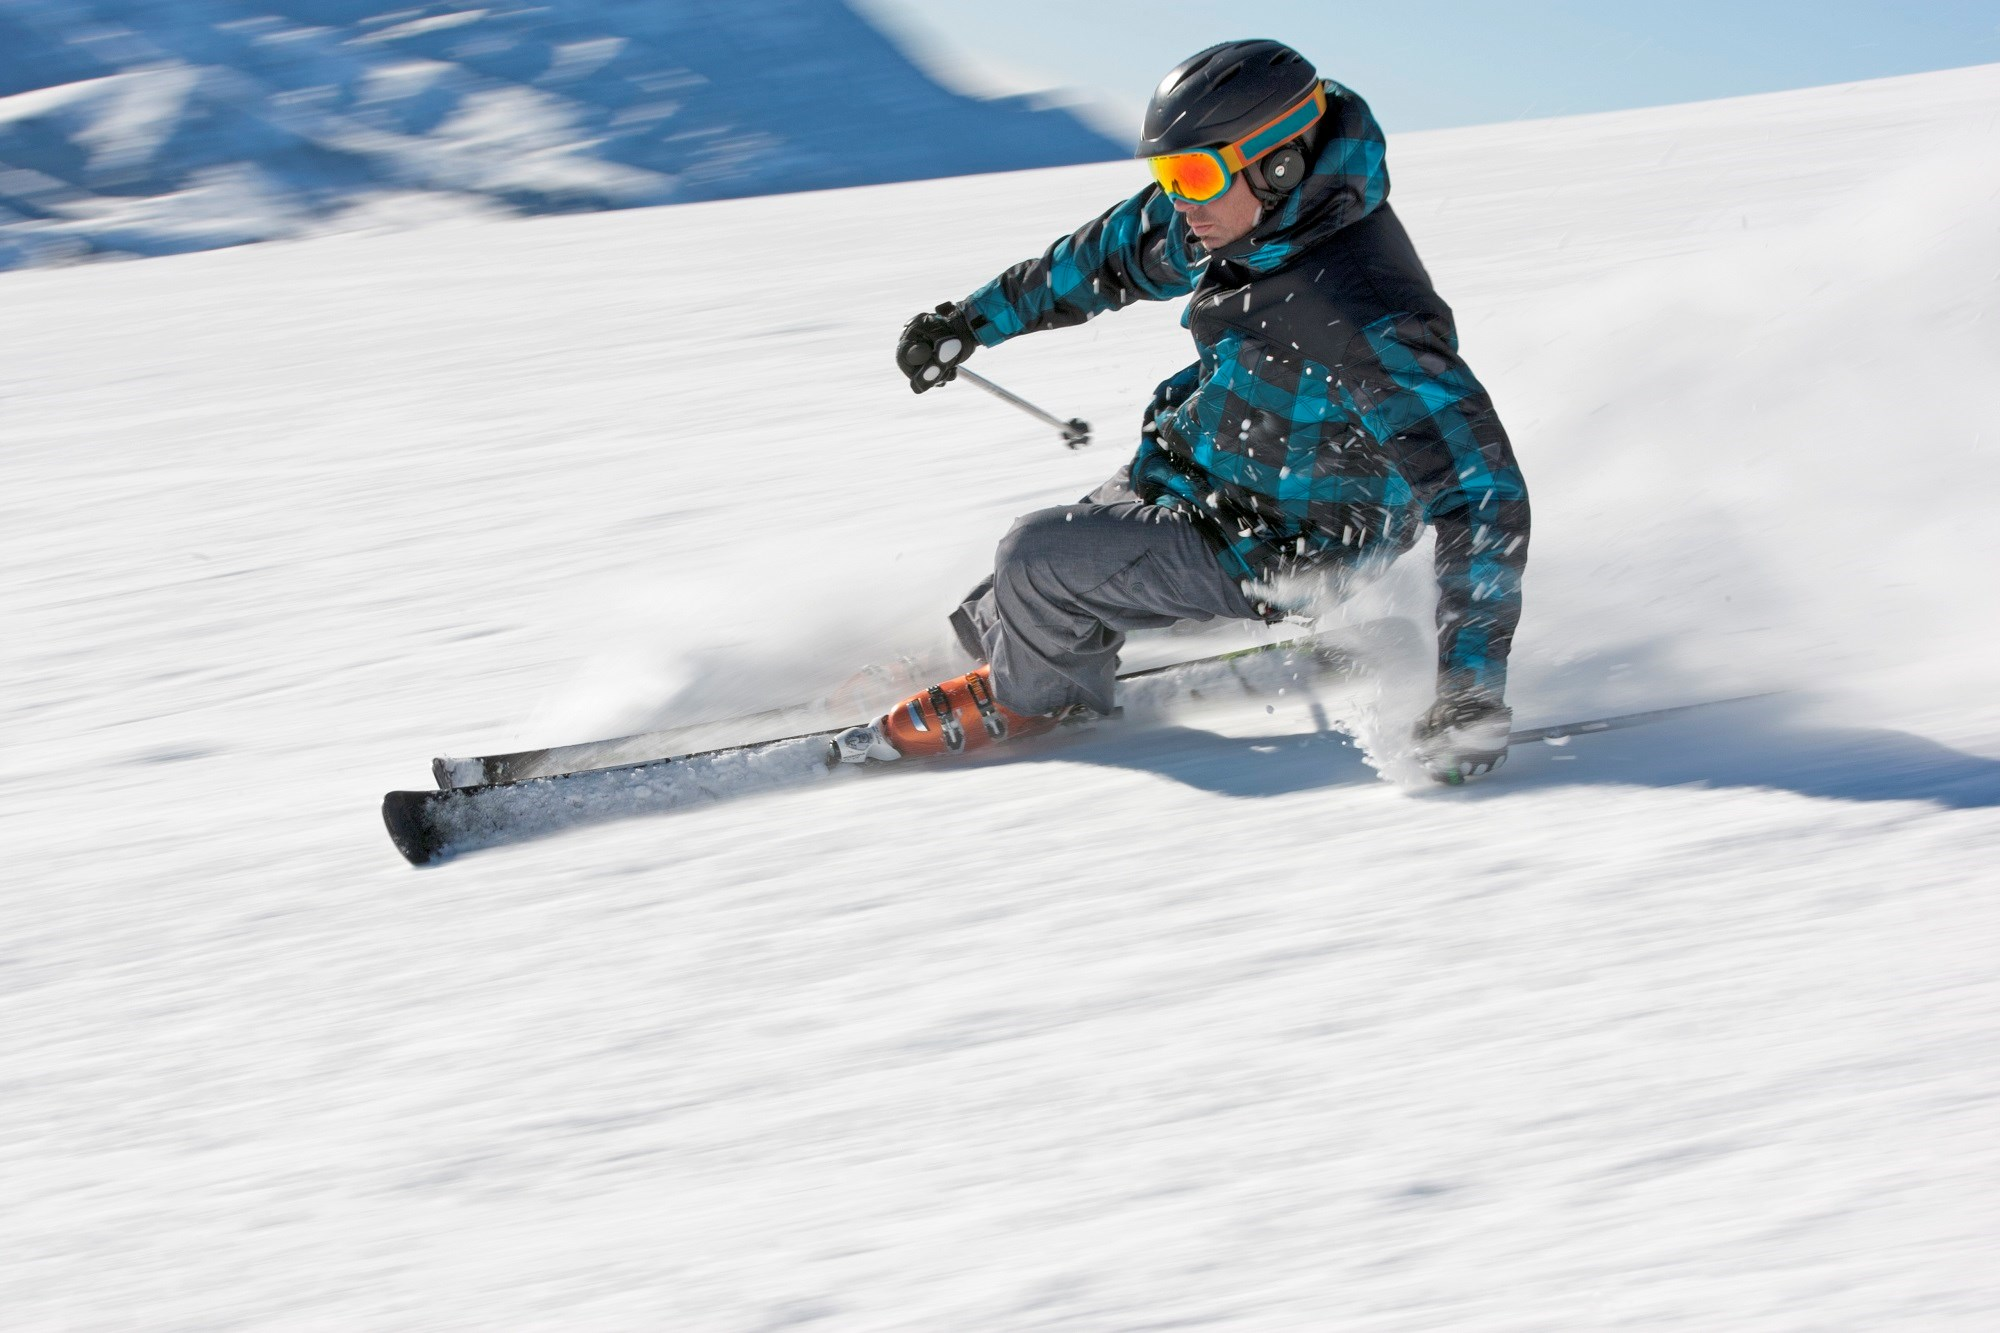 The use of helmets may not protect alpine sports participants from traumatic brain injury.